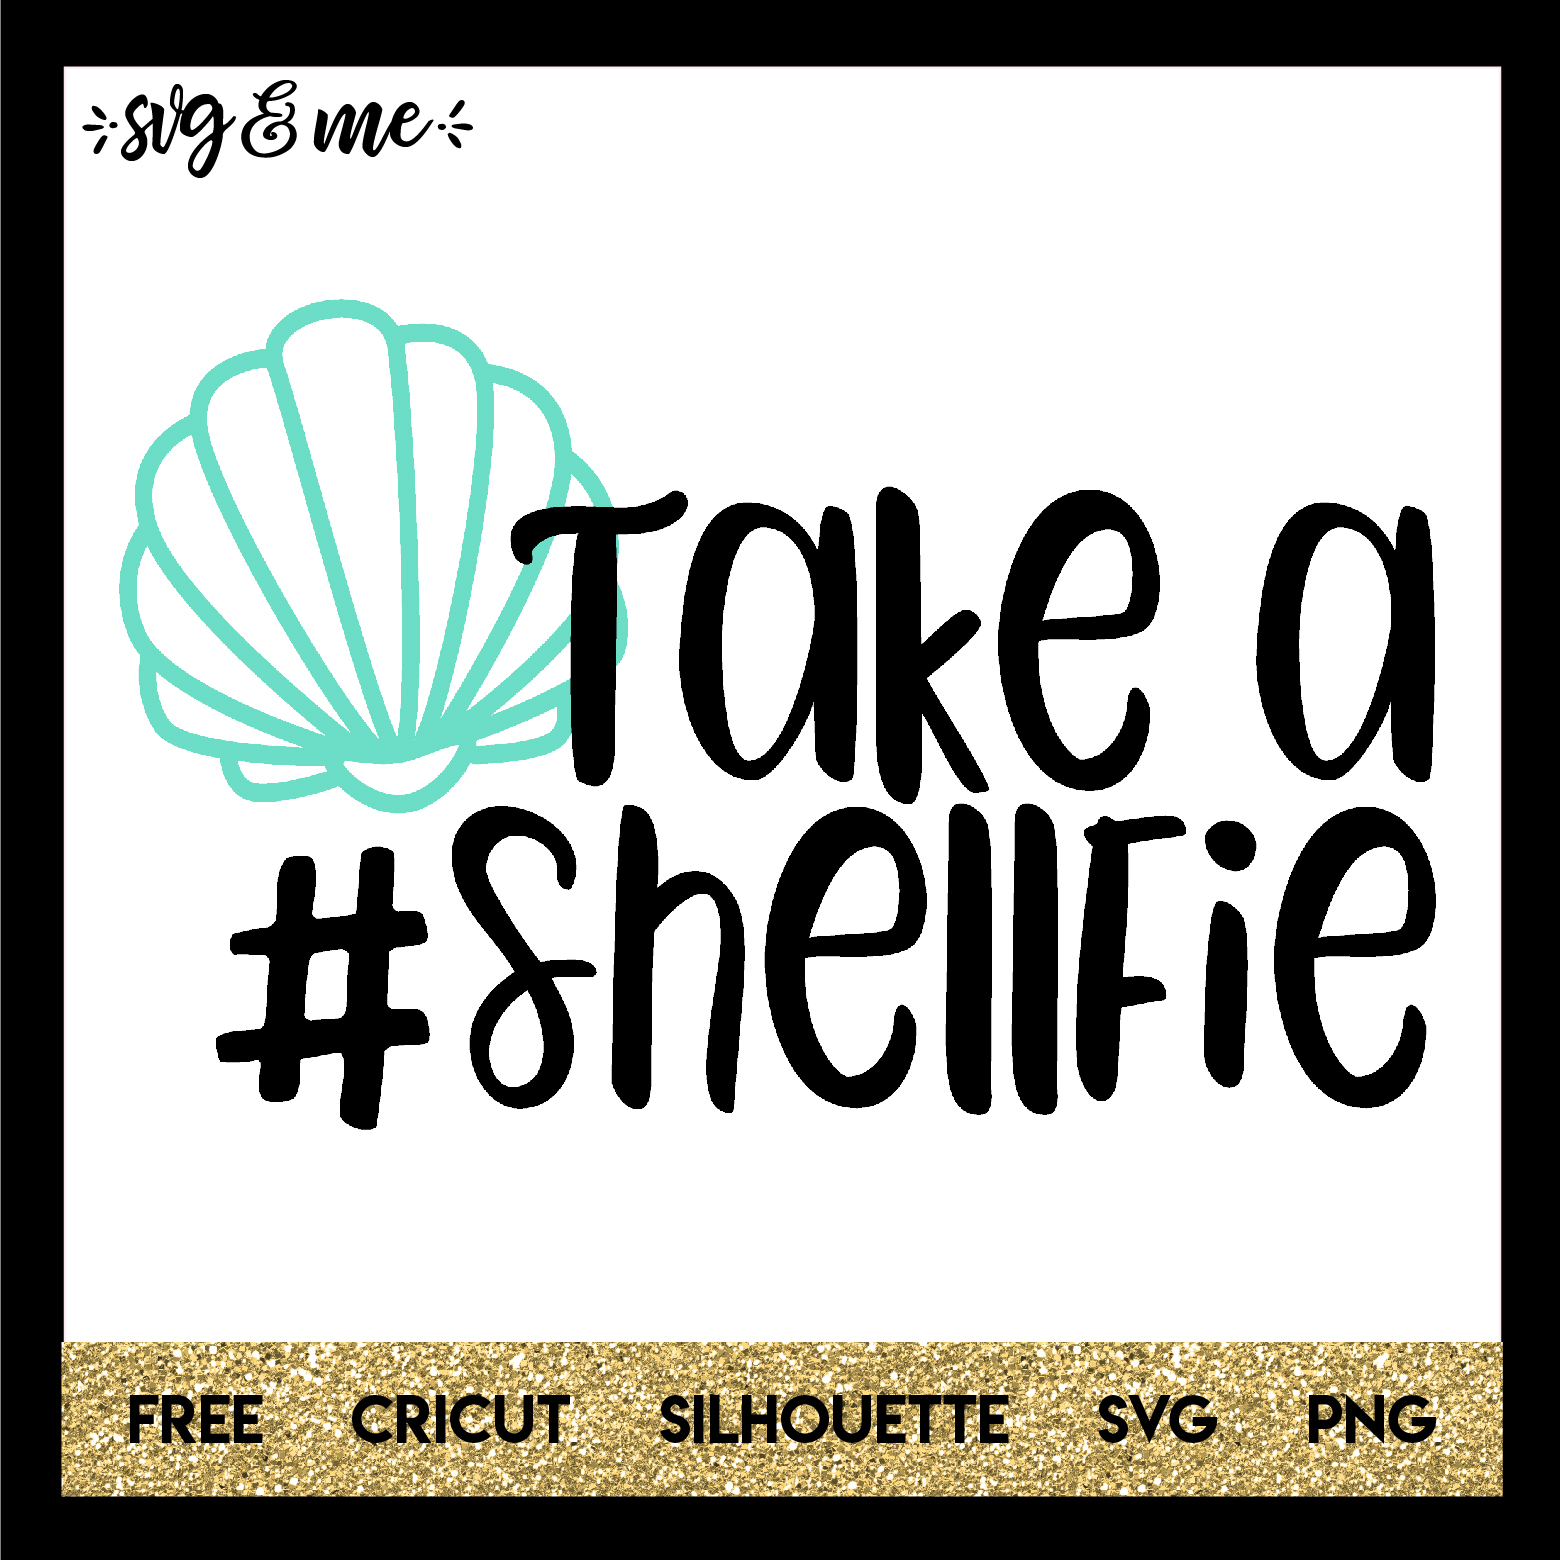 FREE SVG CUT FILE for Cricut and Silhouette DIY Projects - Take a Shellfie Mermaid SVG